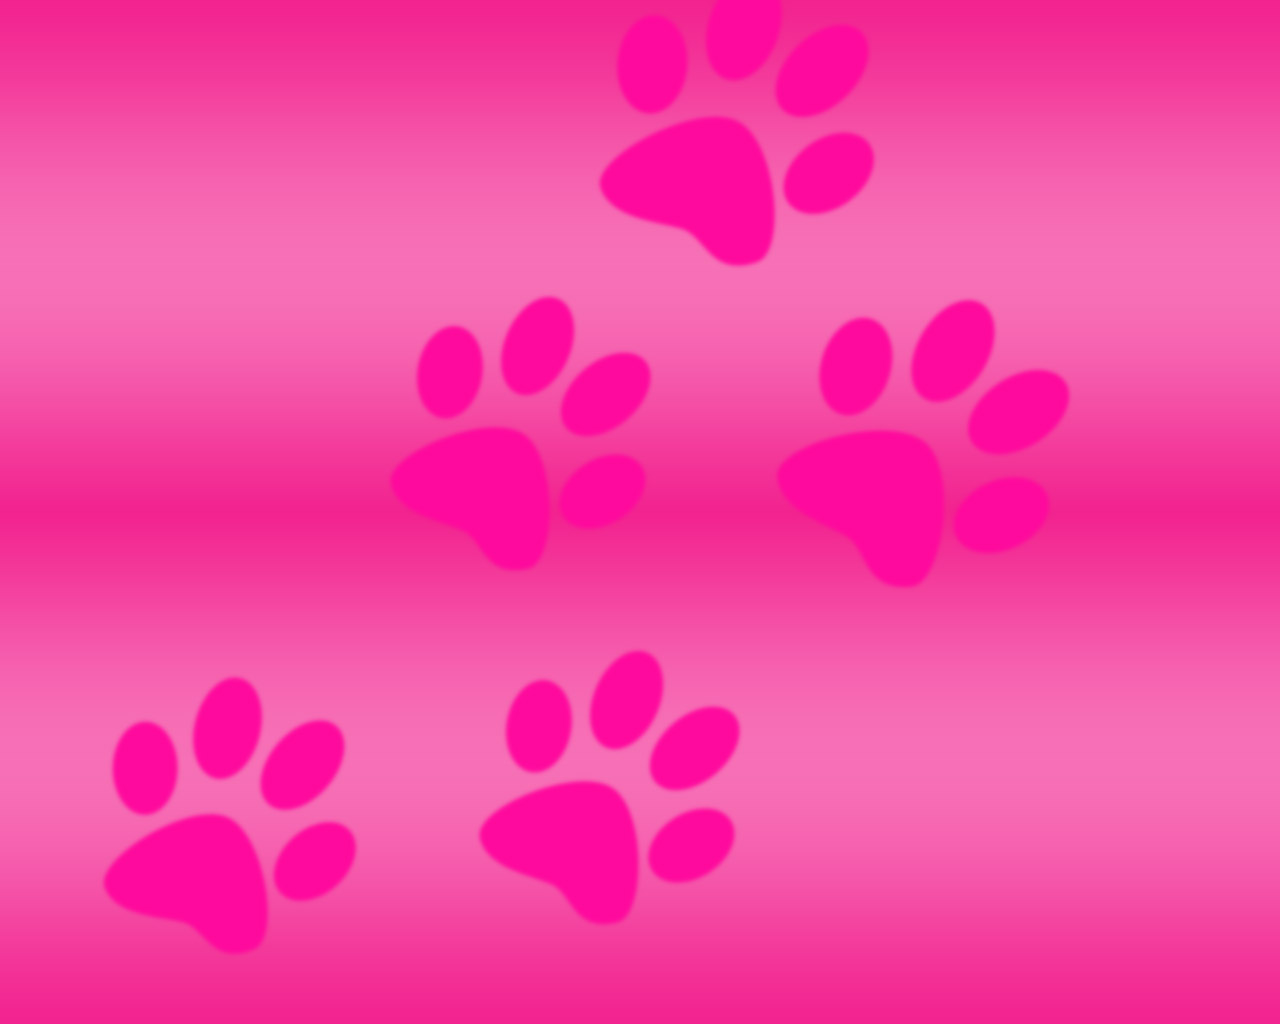 Pink wallpapers for desktop The Images 1280x1024